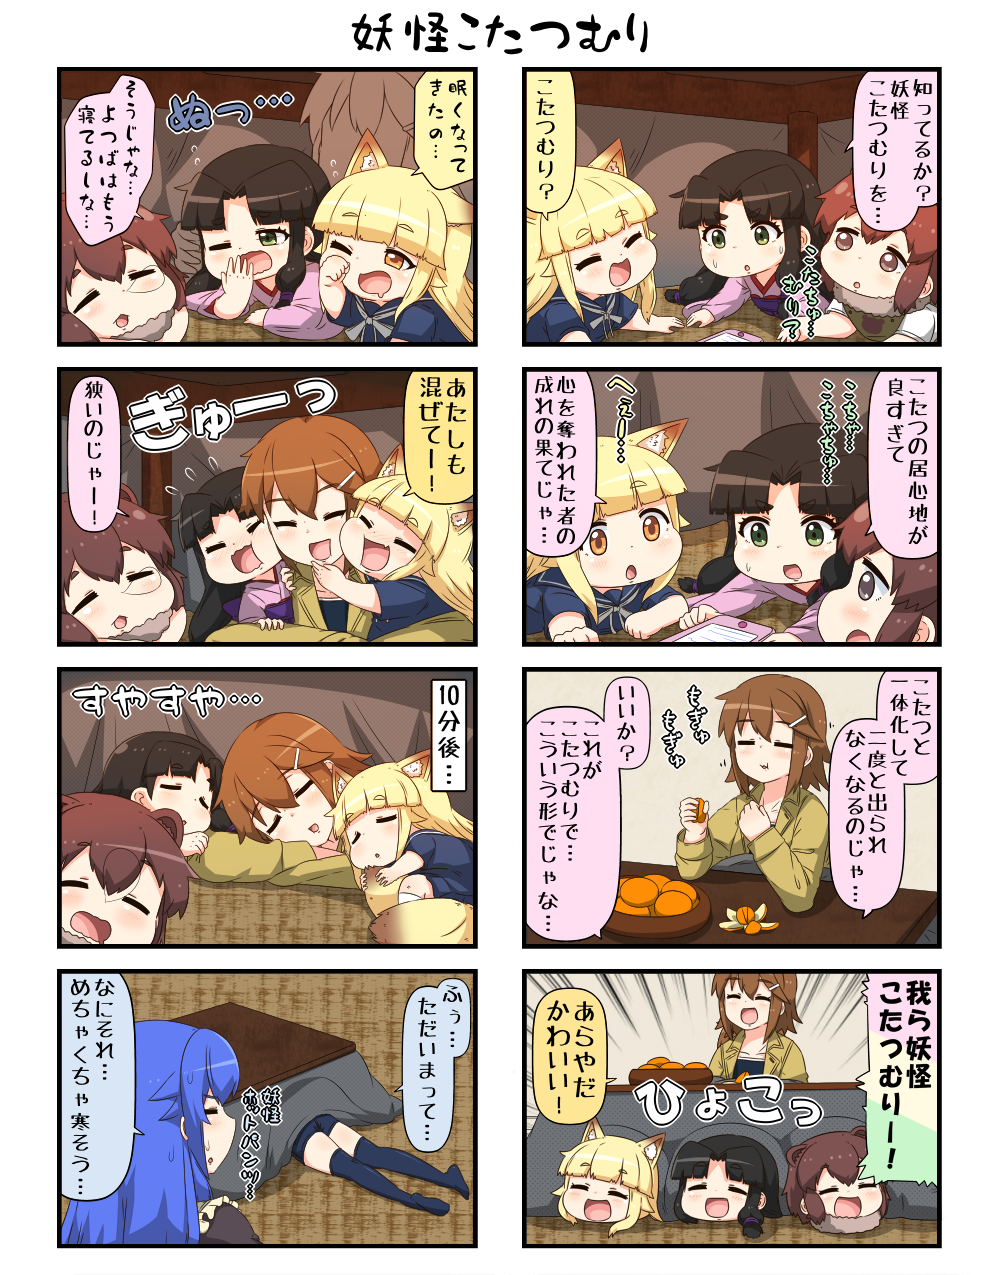 4koma 5girls animal_ears bangs basket black_hair blonde_hair blue_hair blunt_bangs brown_eyes brown_hair cellphone cheek_press chibi closed_eyes coat comic commentary_request danyotsuba_(yuureidoushi_(yuurei6214)) dress eating eyebrows_visible_through_hair food fox_ears fox_tail fruit fur_collar green_eyes hair_between_eyes hair_ornament hairclip hand_to_own_mouth highres holding holding_food japanese_clothes kimono kotatsu long_hair long_sleeves mandarin_orange multiple_girls multiple_tails nose_bubble one_eye_closed onizuka_ao open_mouth original phone raccoon_ears reiga_mieru rubbing_eyes shiki_(yuureidoushi_(yuurei6214)) short_sleeves shorts sleeping smartphone smile sweatdrop table tail tail_hug tatami tenko_(yuureidoushi_(yuurei6214)) thigh-highs translation_request under_kotatsu under_table wide-eyed wide_sleeves yawning yellow_eyes youkai yuureidoushi_(yuurei6214)